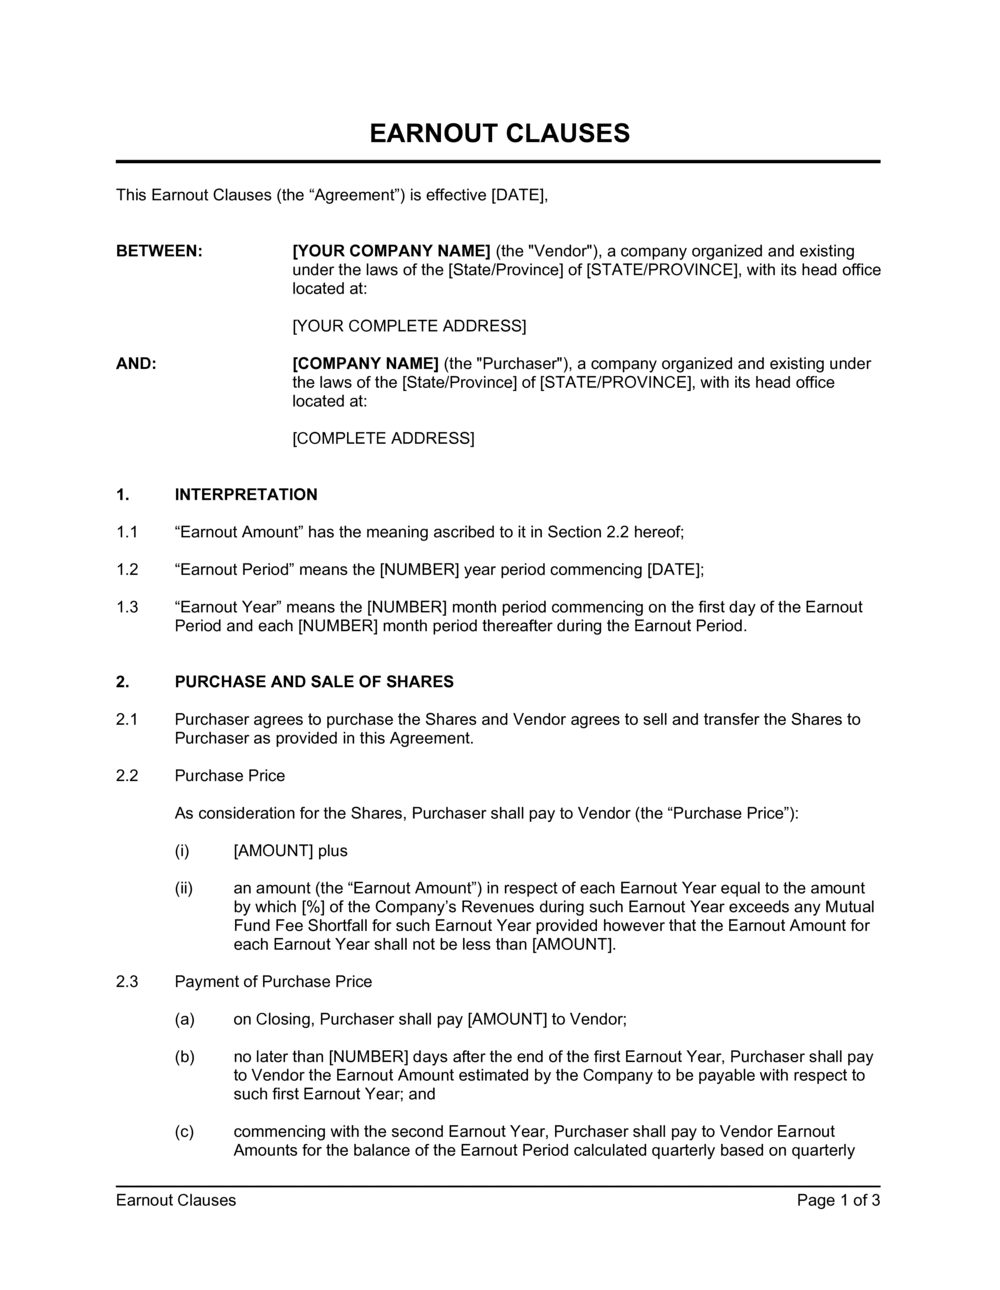 Business-in-a-Box's Earnout Clauses Agreement Template